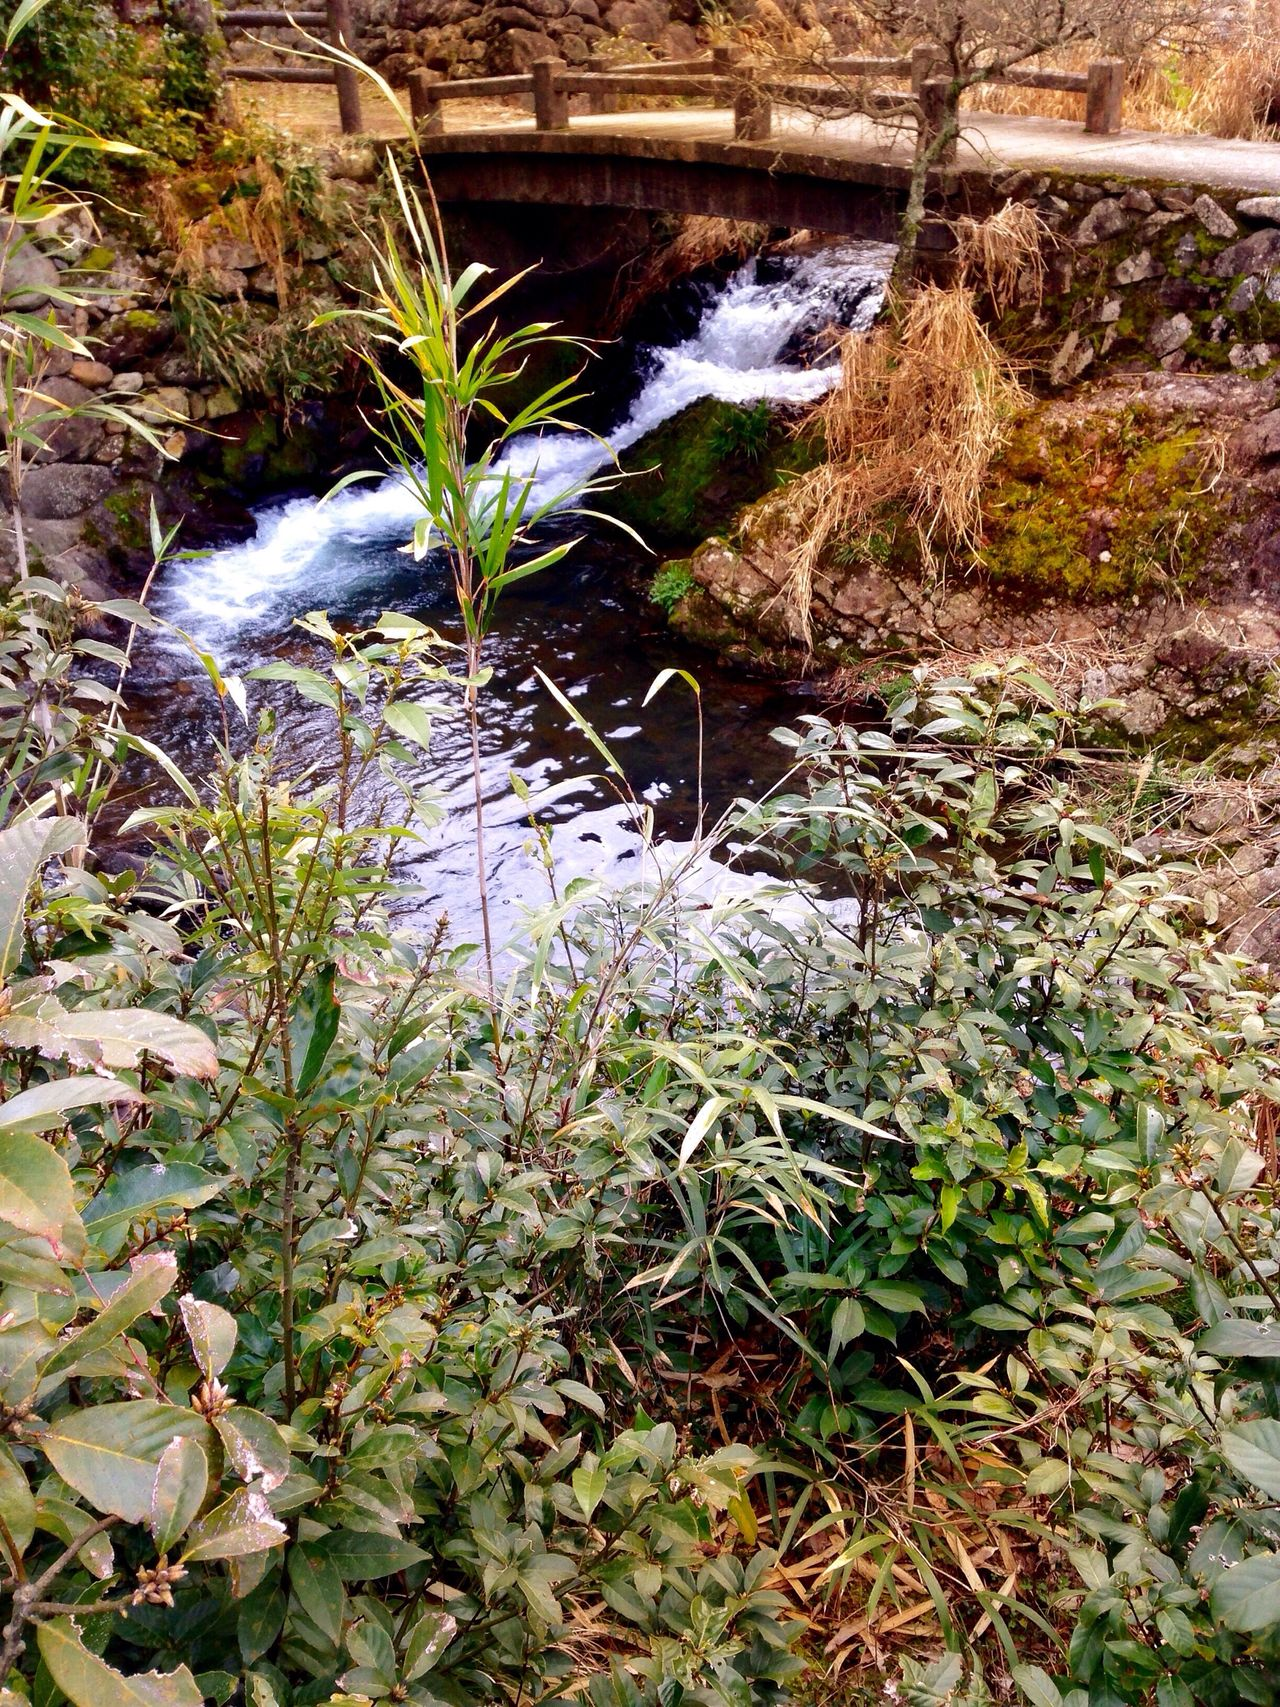 Mywaterfallcollection Wasserfall Creek Stream Creekside Trail Growth Plant Nature Outdoors No People Day Close-up Possibilities  Gateway KYUSHU Japan Photography